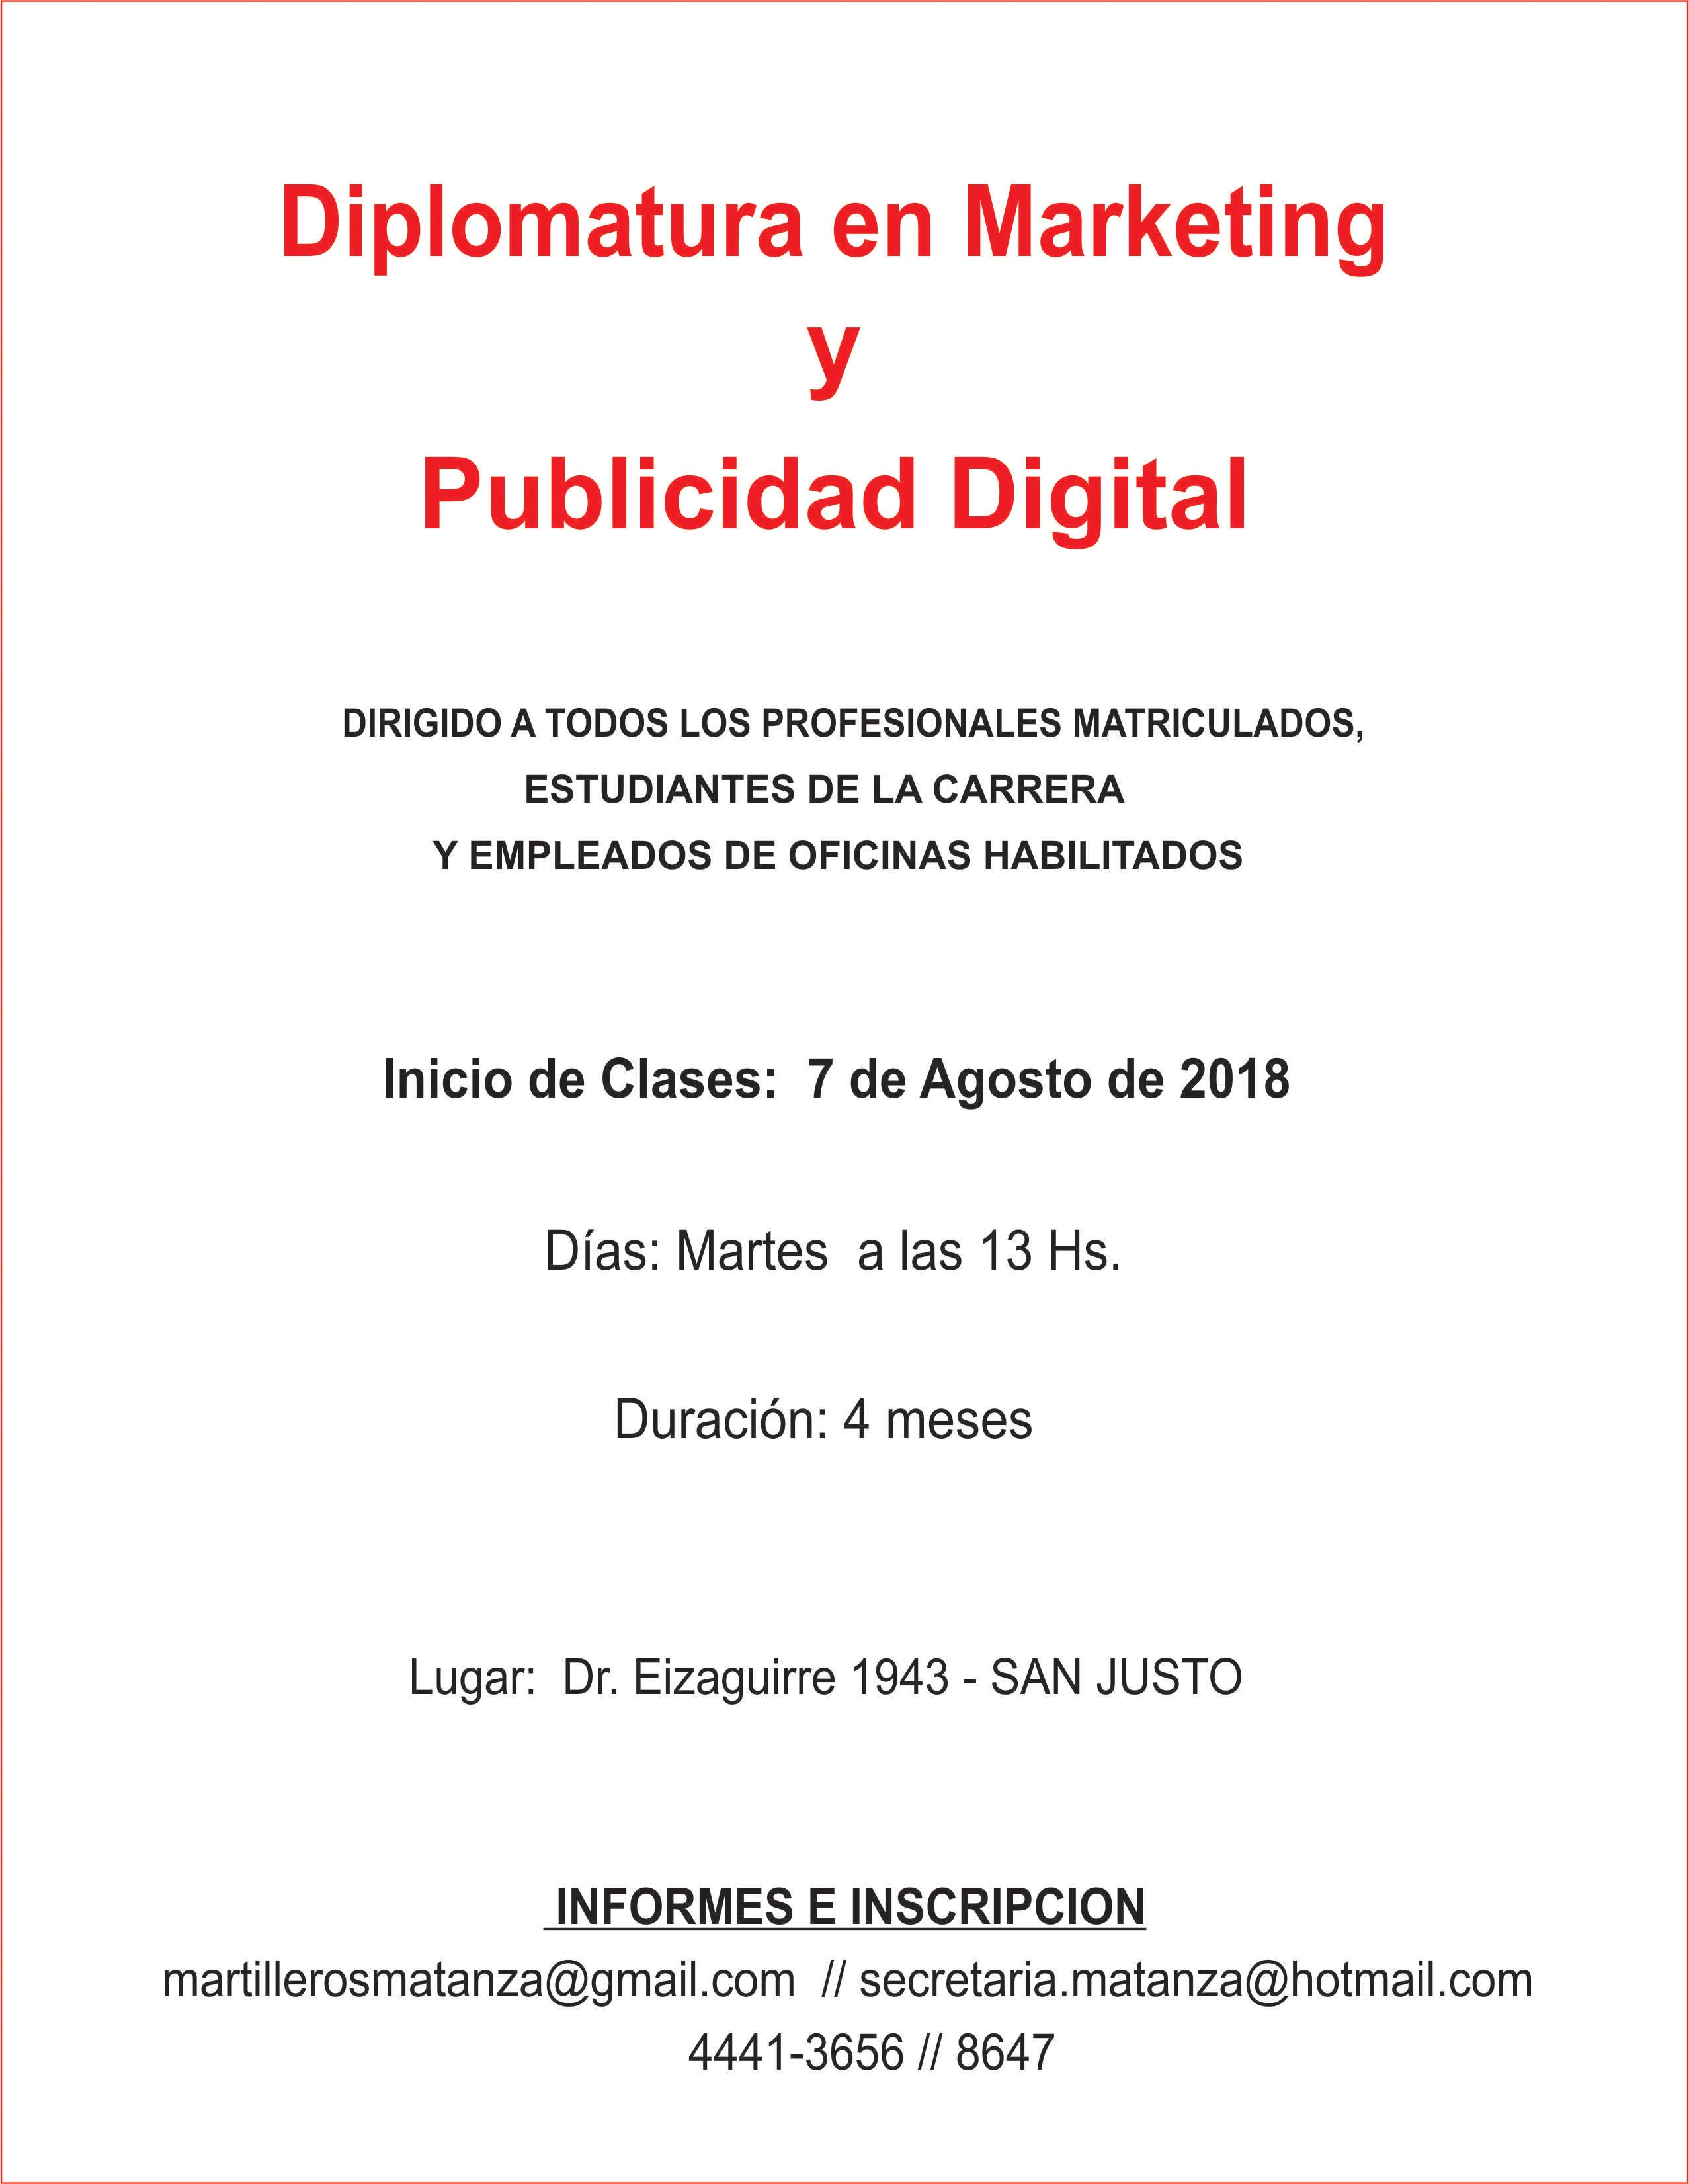 DIPLOMATURA MARKETING Y PUBLICIDAD 2018